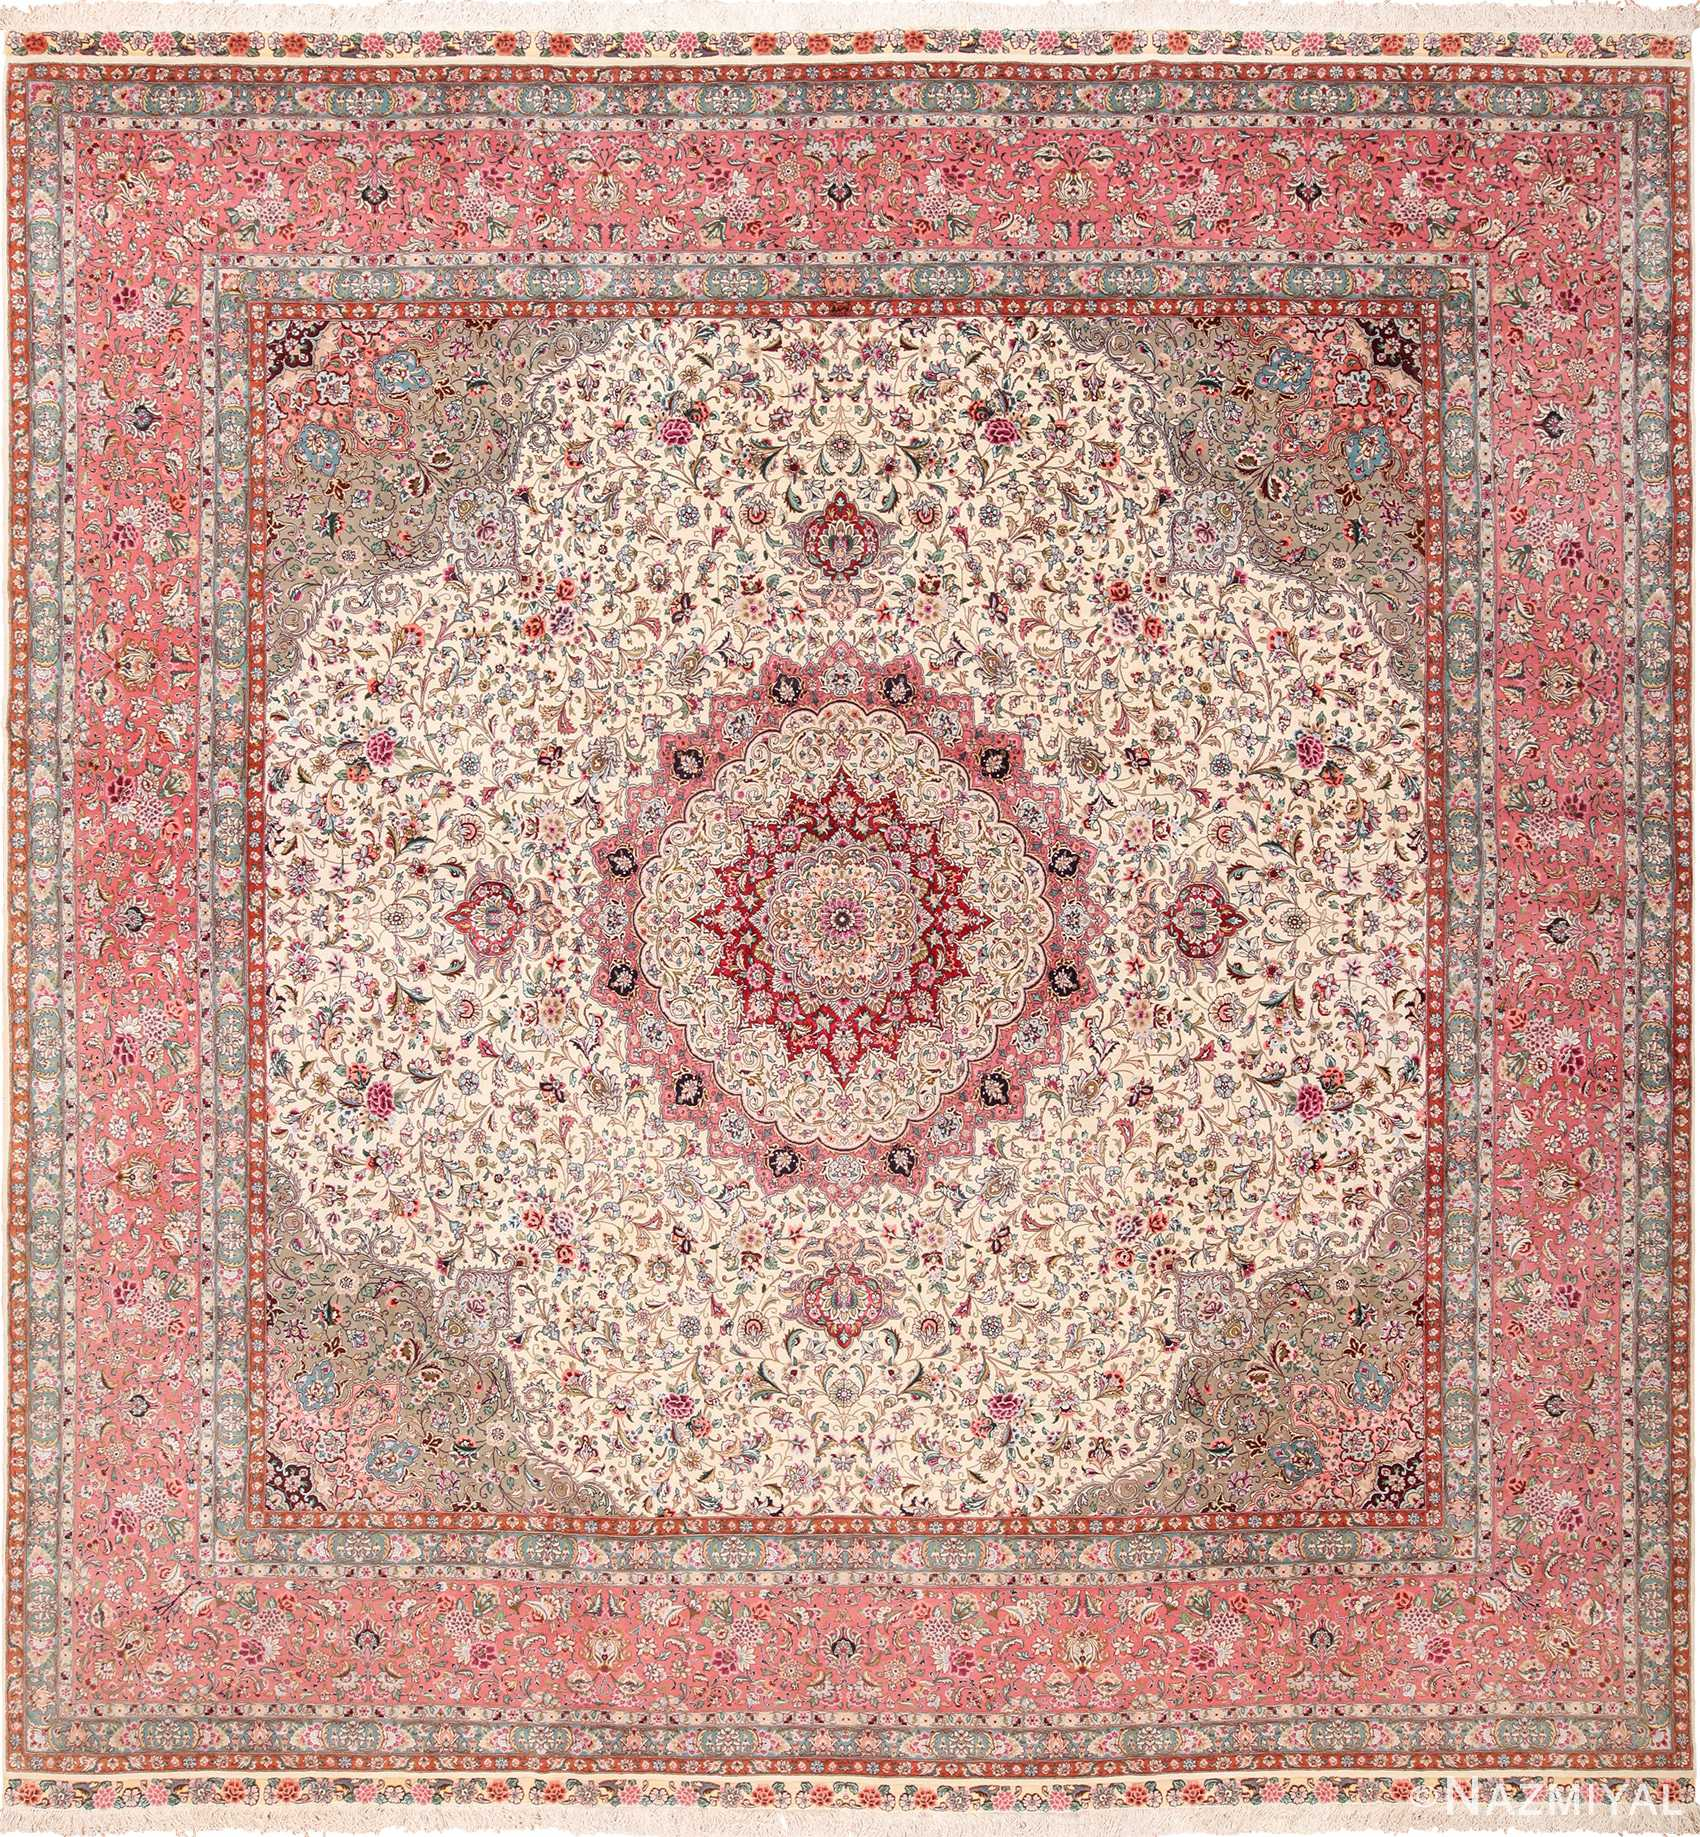 Square Fl Silk And Wool Vintage Tabriz Persian Rug 60021